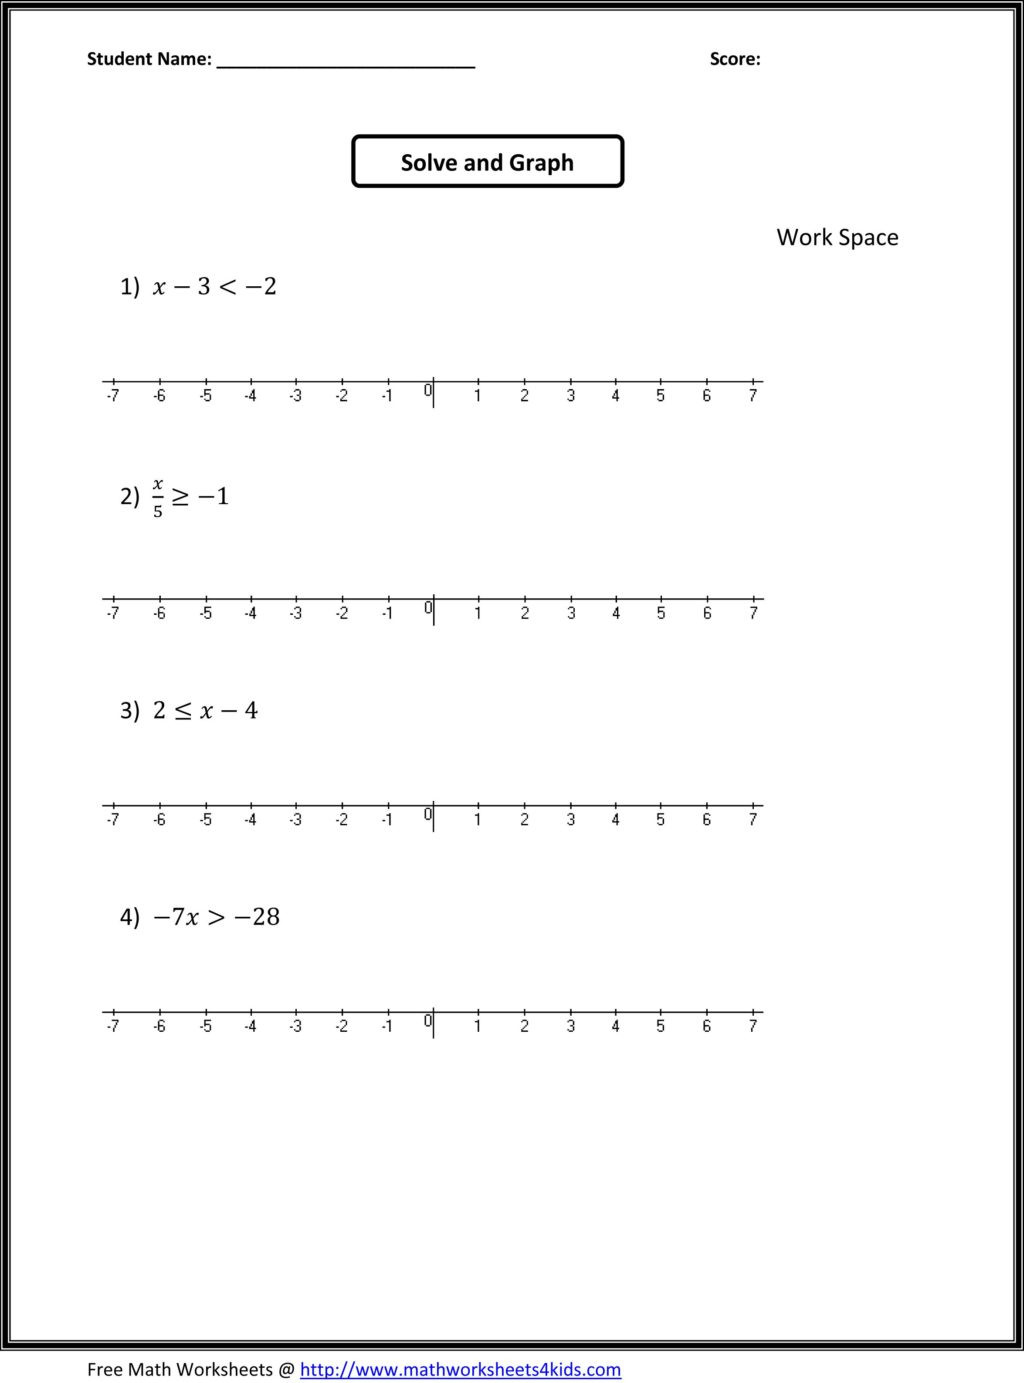 Touch Points Math Worksheets Worksheet 7th Grade Math Worksheets Algebra Barkarintable